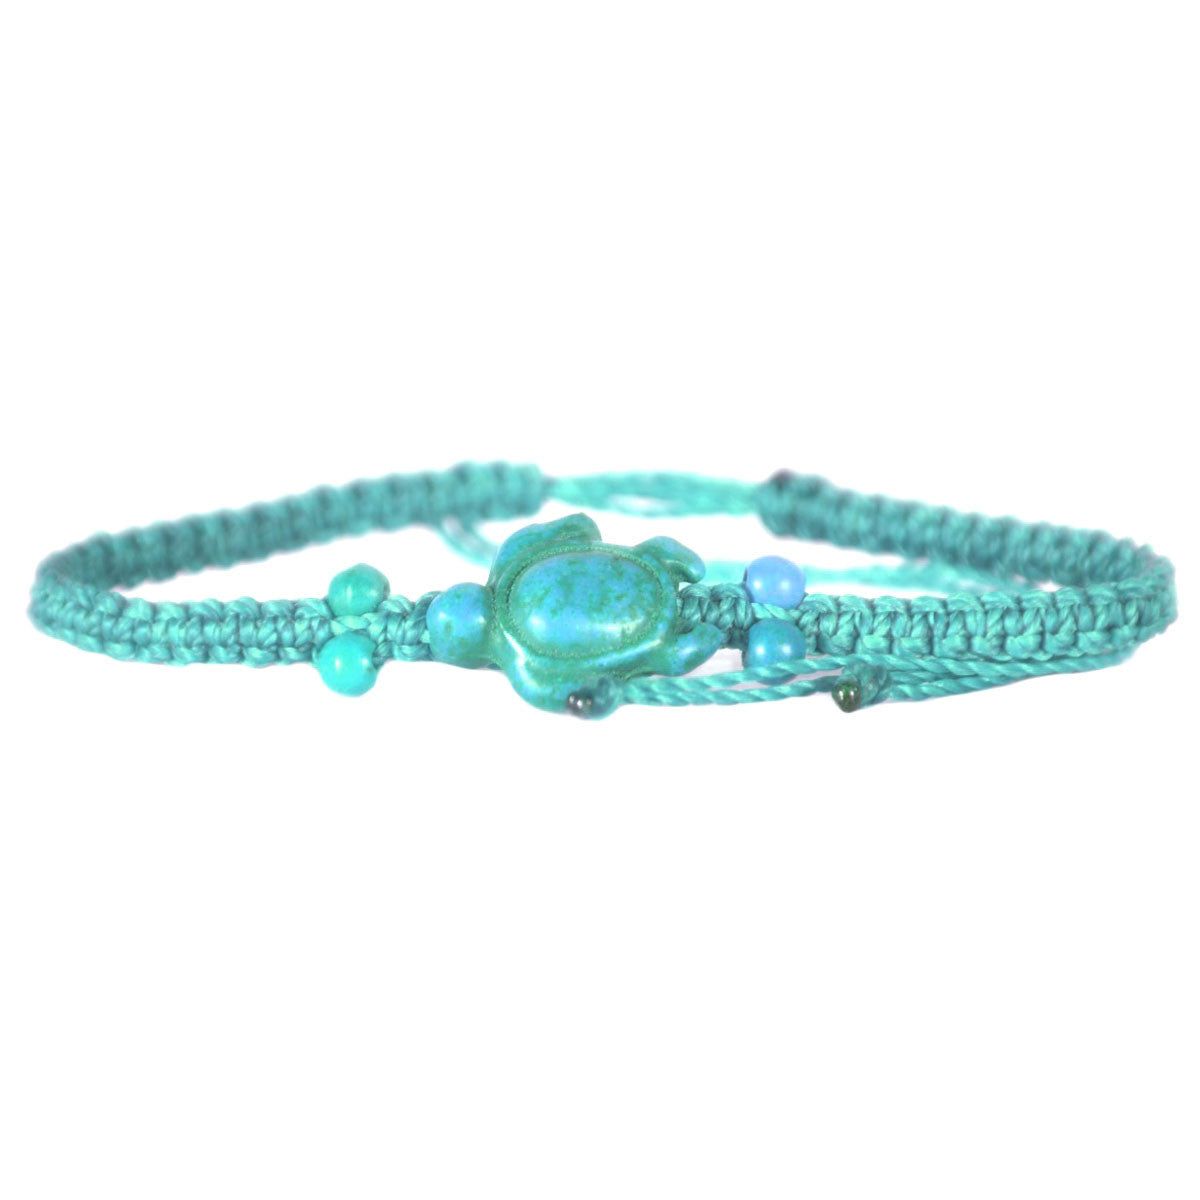 Beaded Sea Turtle Bracelet Turquoise